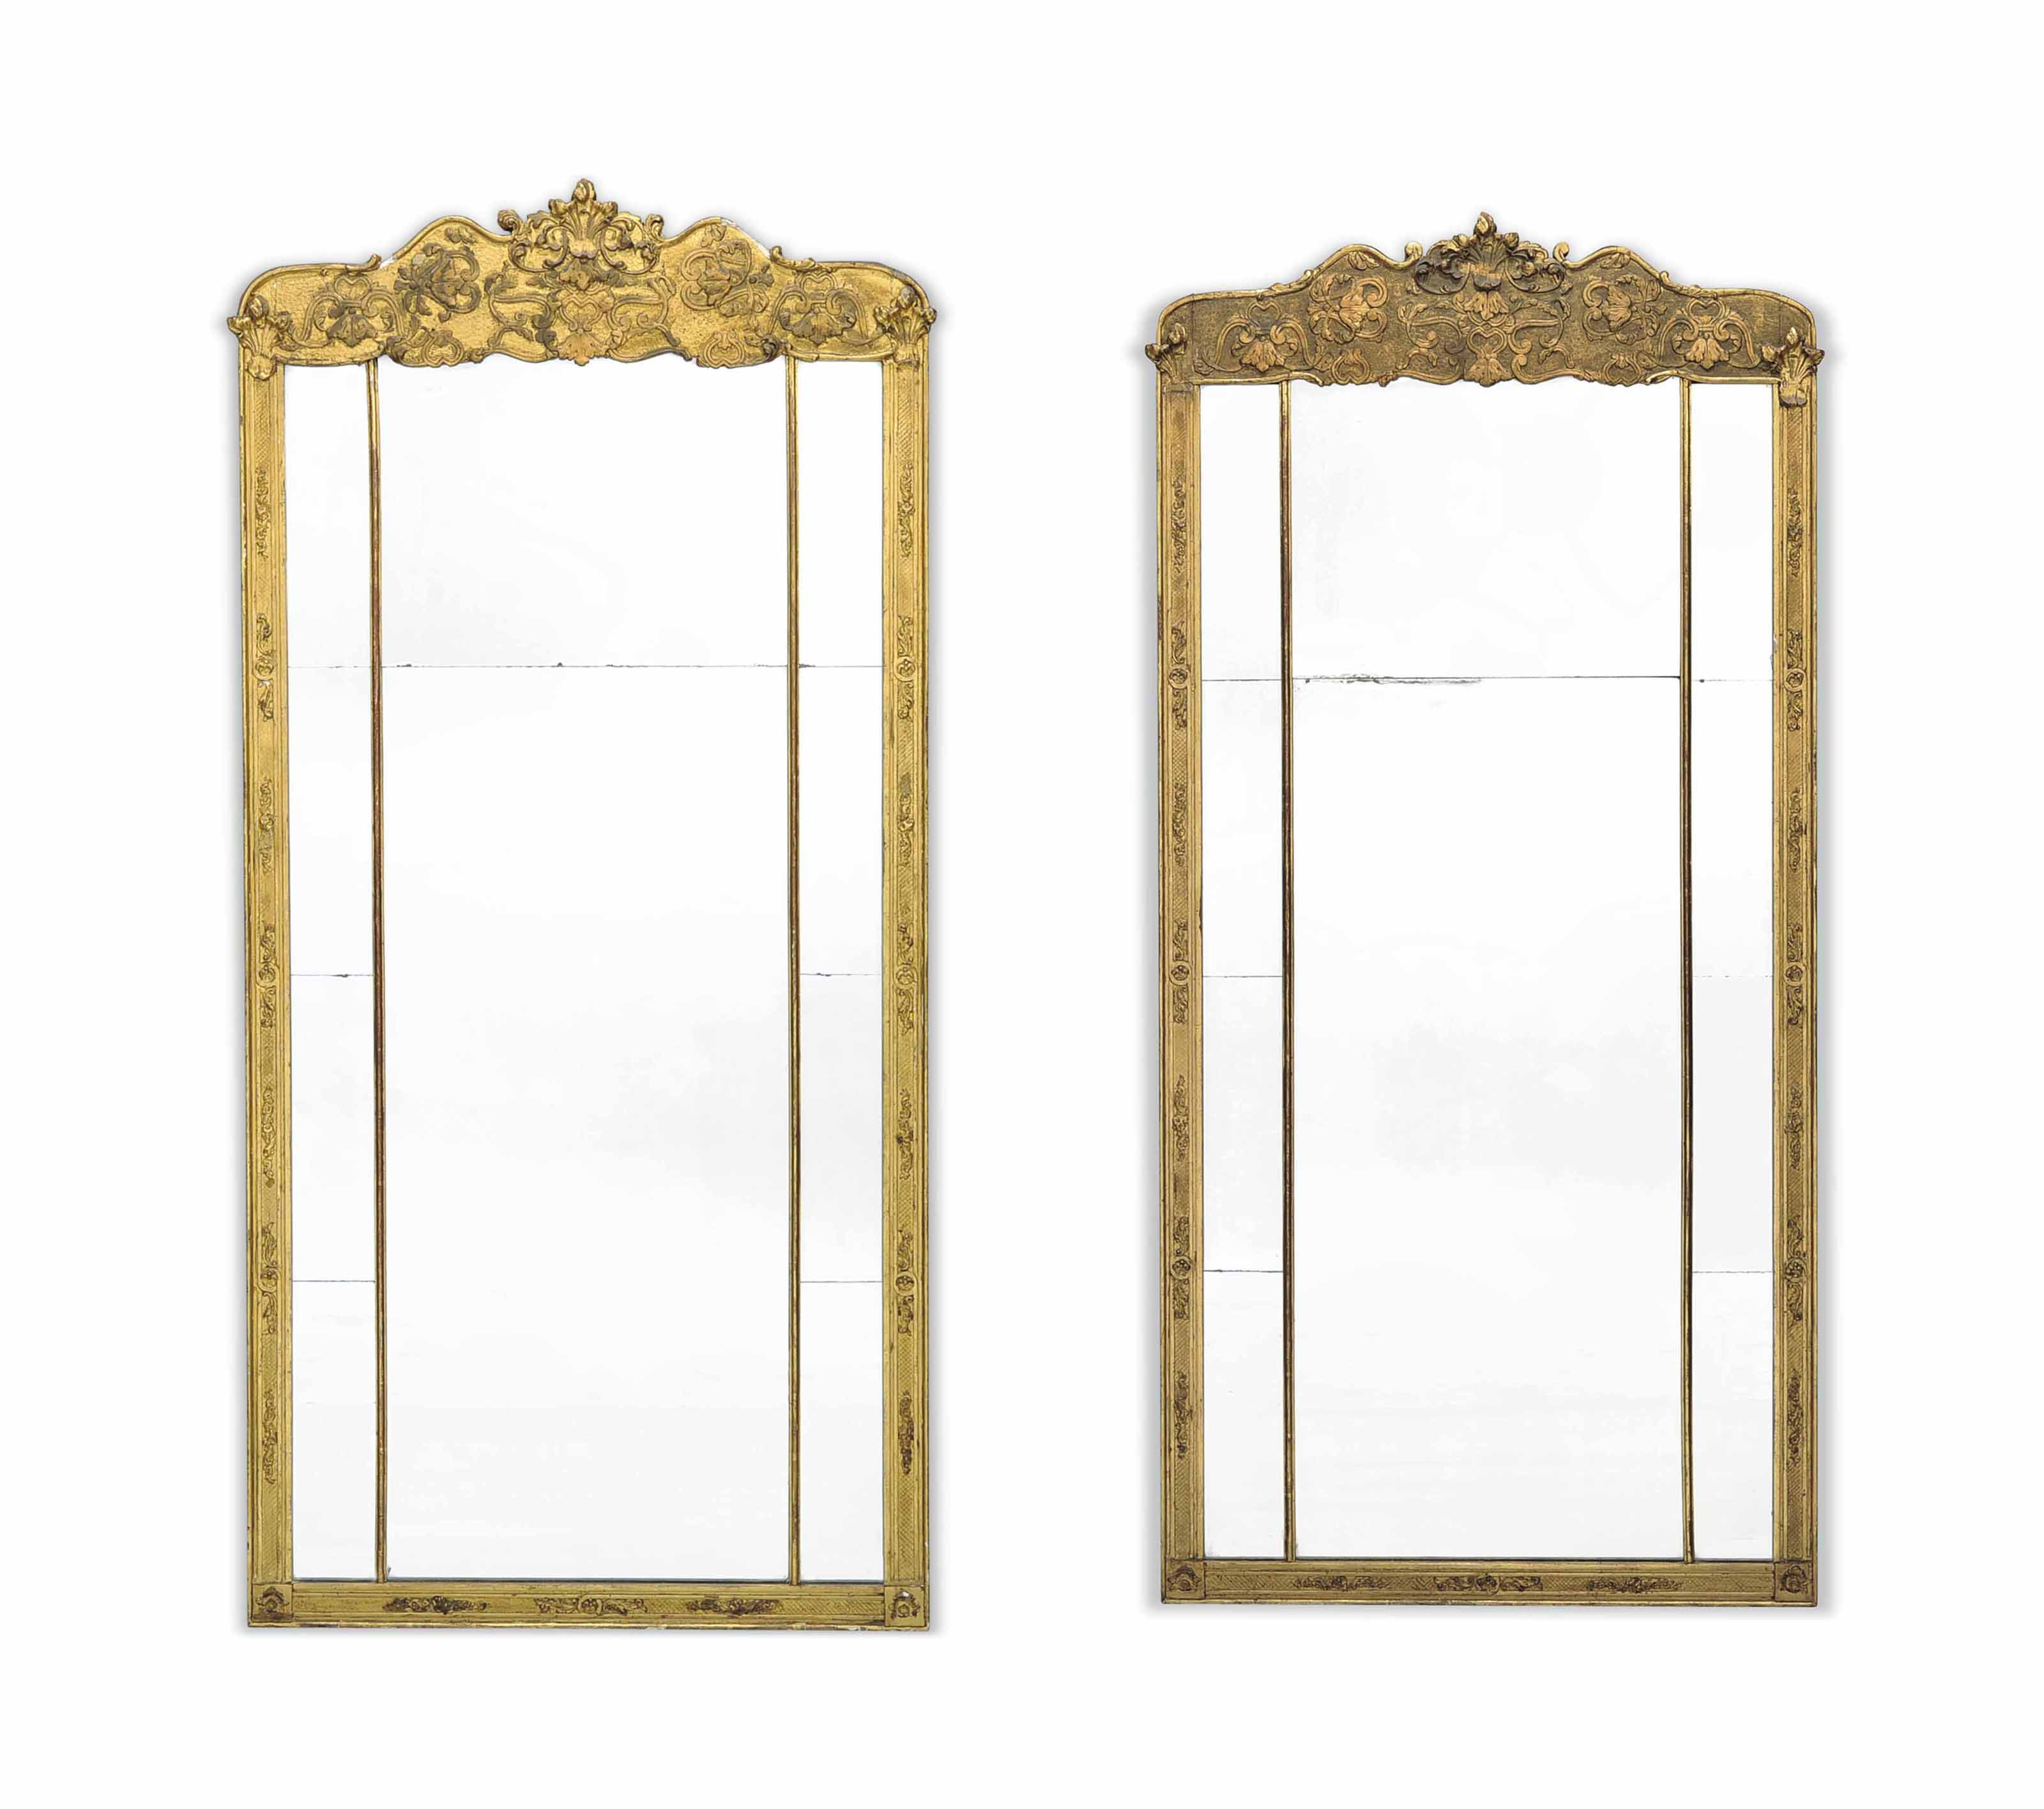 A PAIR OF LATE VICTORIAN GILTWOOD AND COMPOSITION MIRRORS